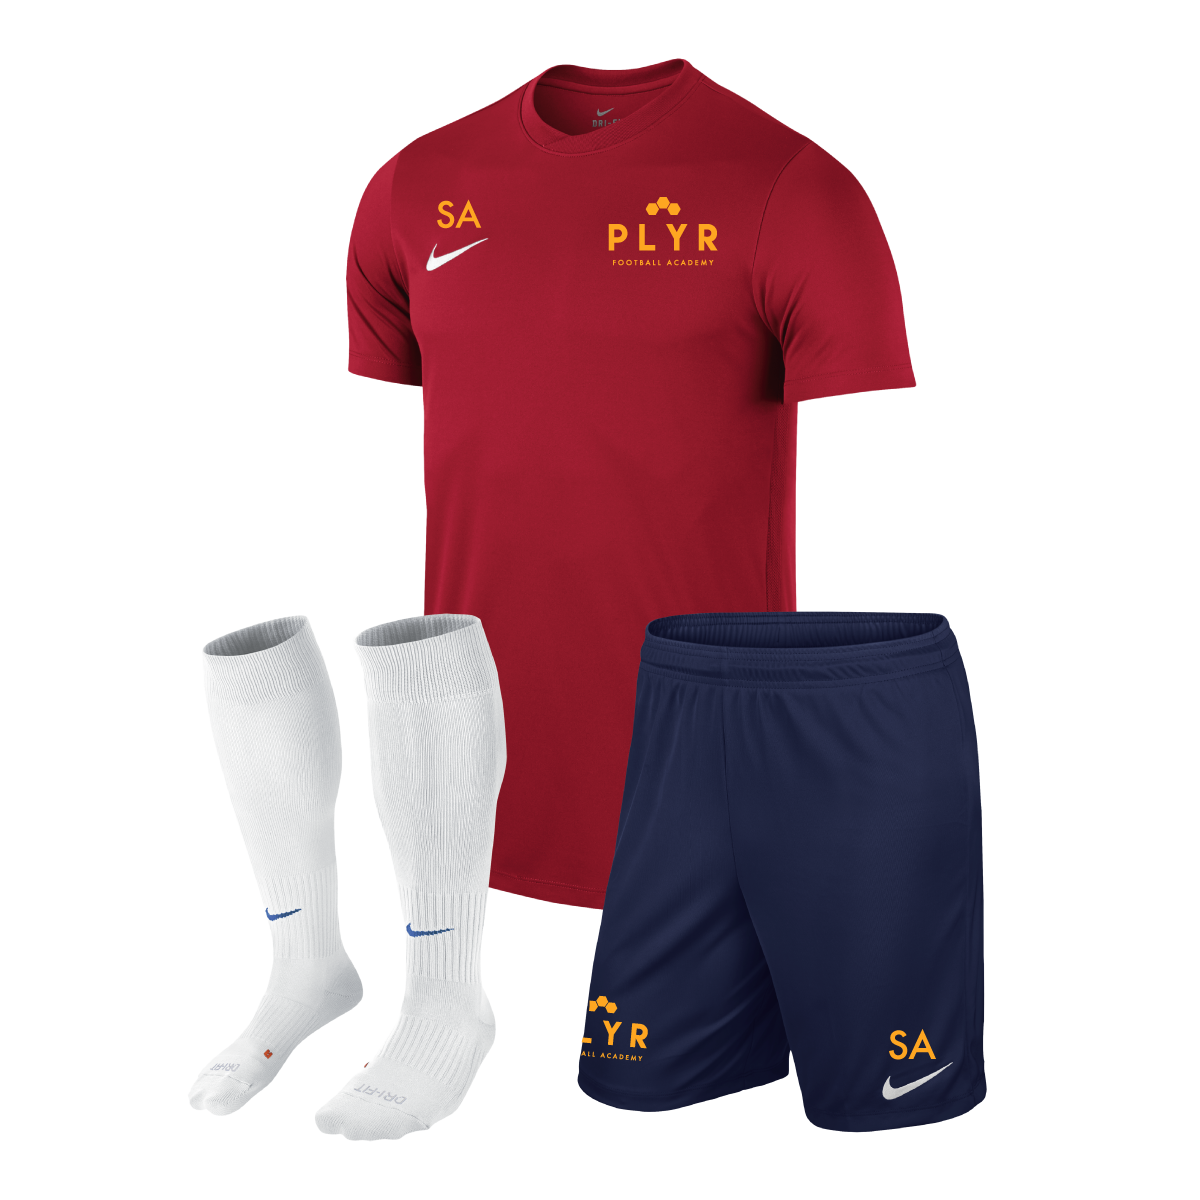 official store fast delivery new concept PLYRFA Nike Training Kit — PLYR Football Academy